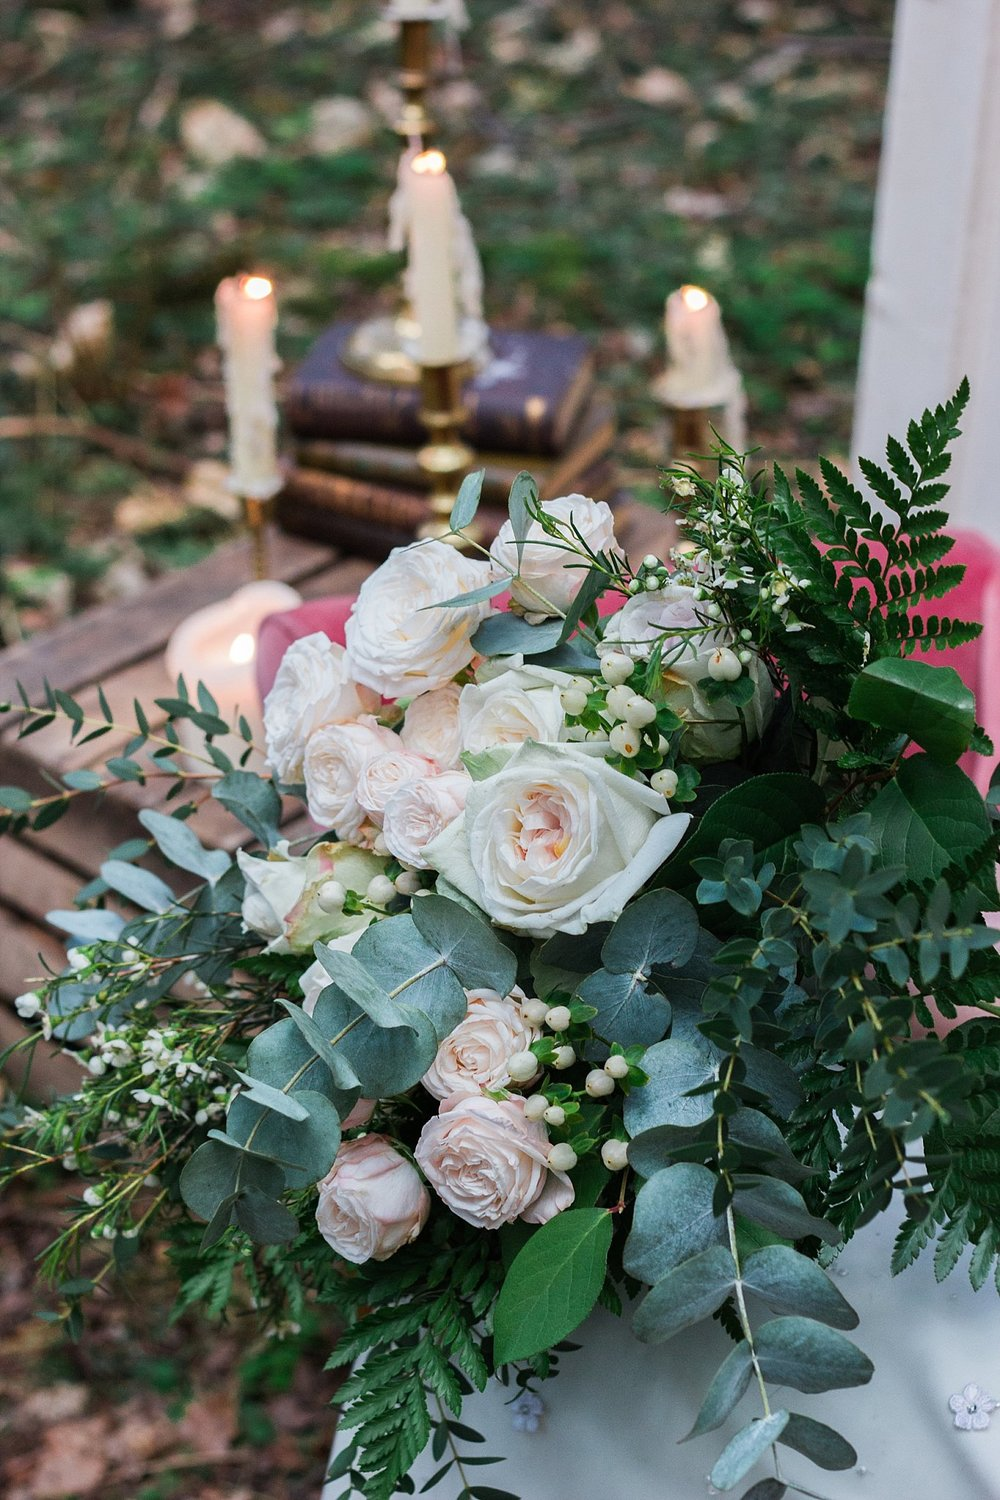 Vintage Amy Wedding Styling-Whimsical Woodland Wedding Inspiration Kent-Vintage Neutral Wedding Bouquet